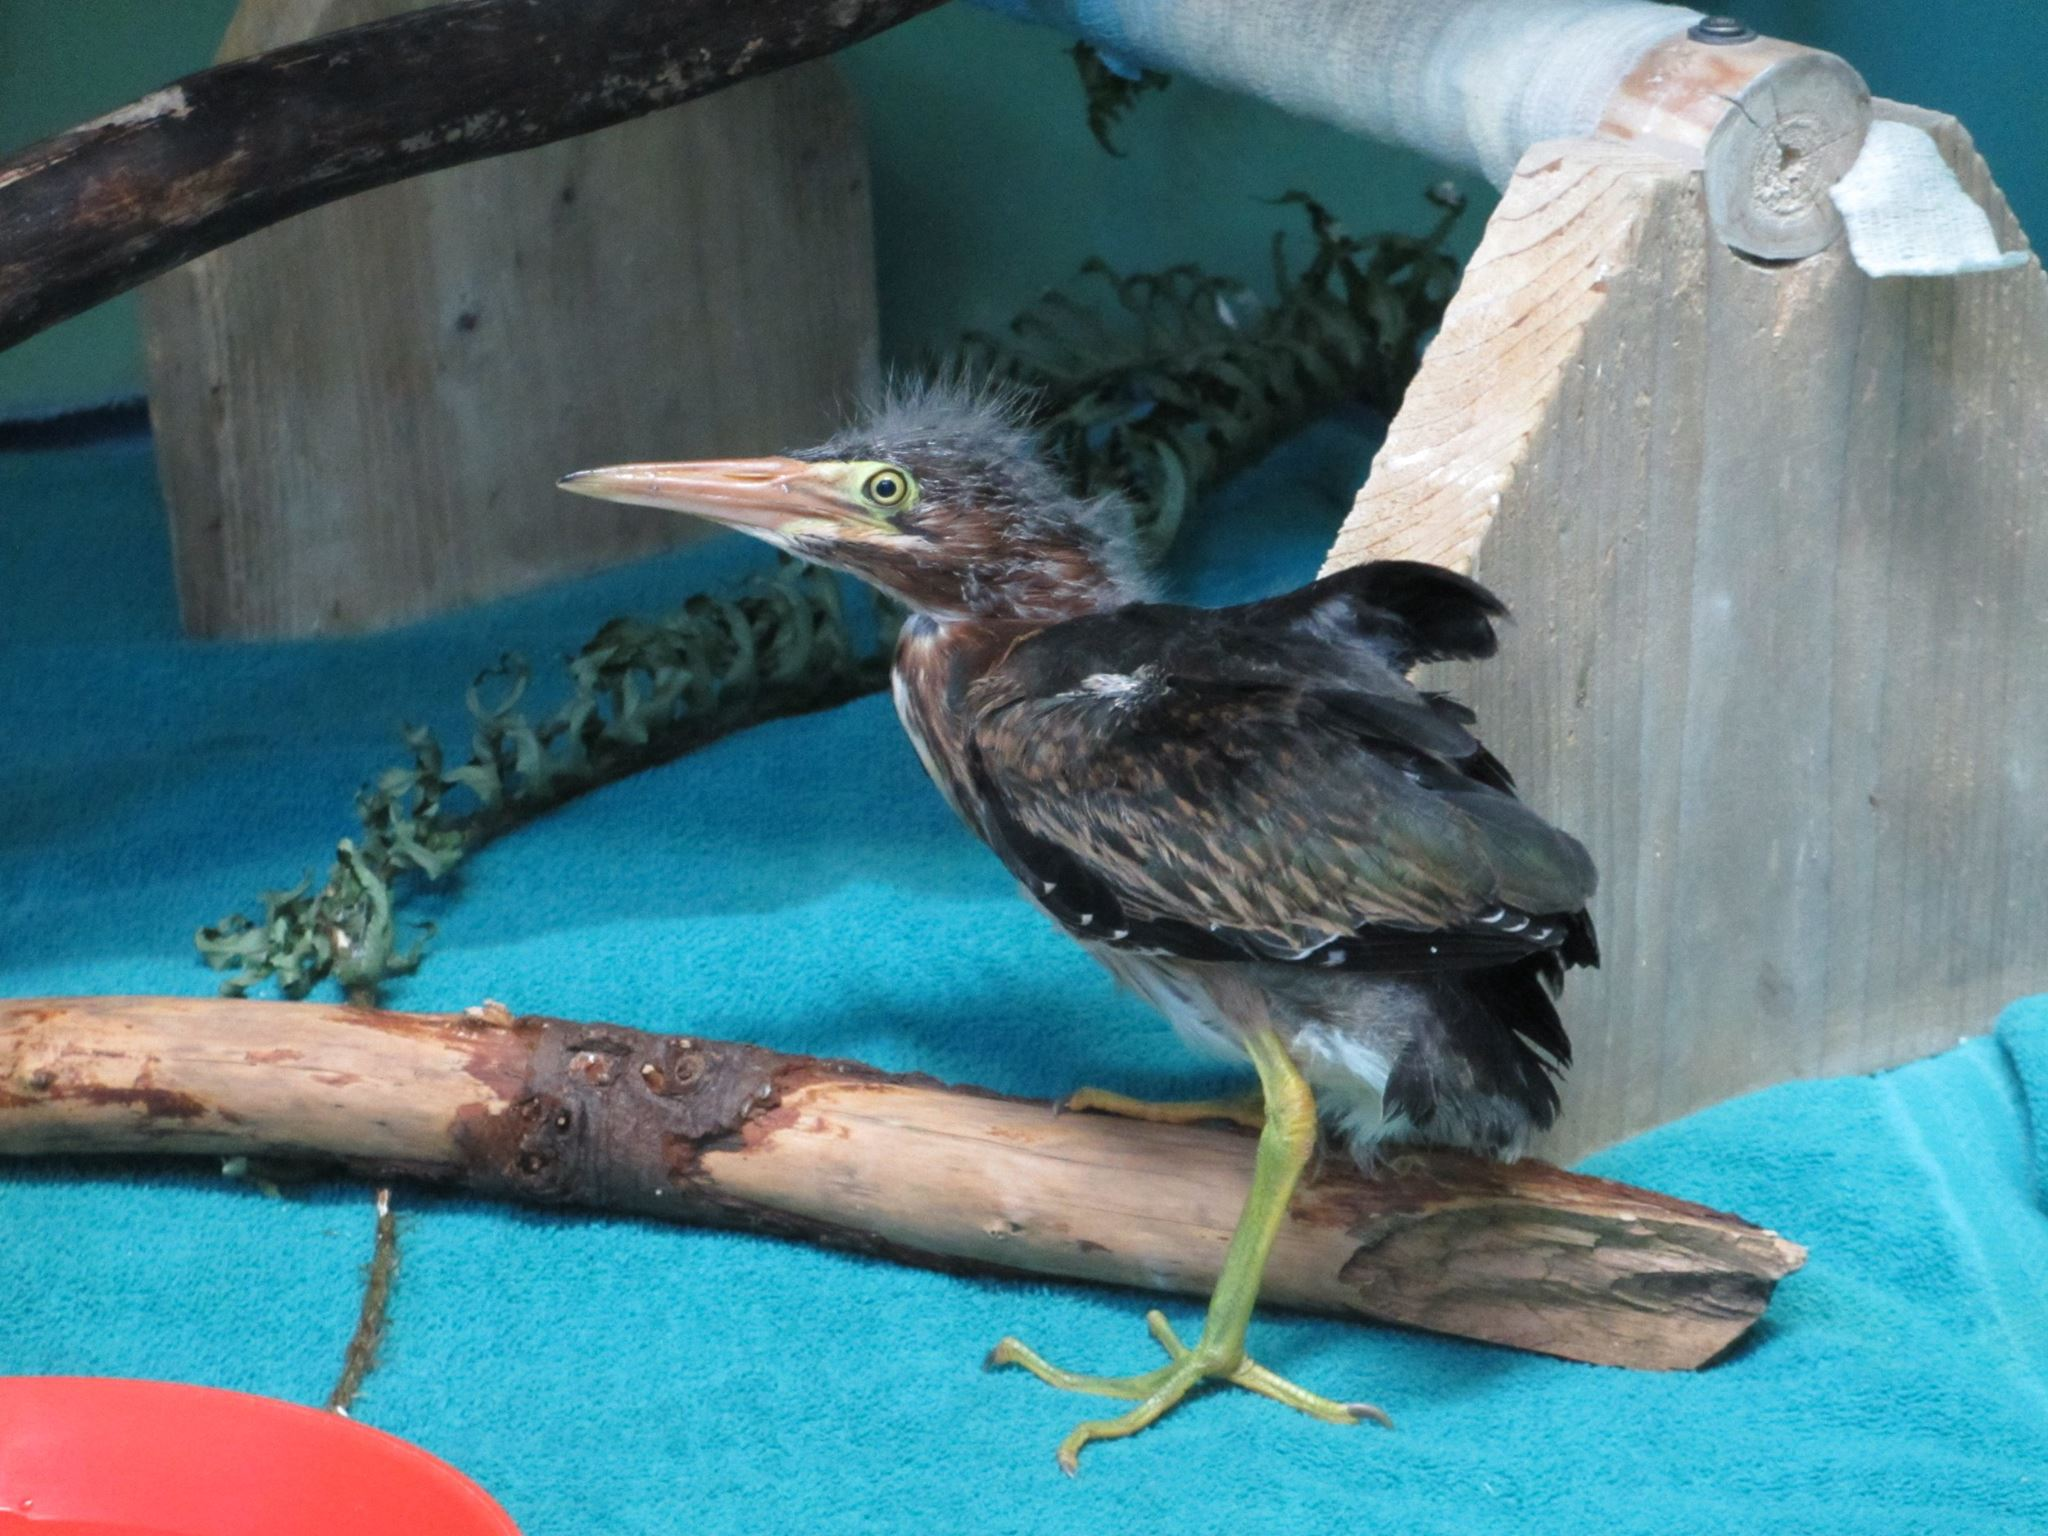 This cute little green heron is one of our current patients. We have many species of birds and mammals in our care this summer. Each has a unique diet – this little guy will be eating live minnows. Your donations help us feed and care for this heron and all the other patients here right now.